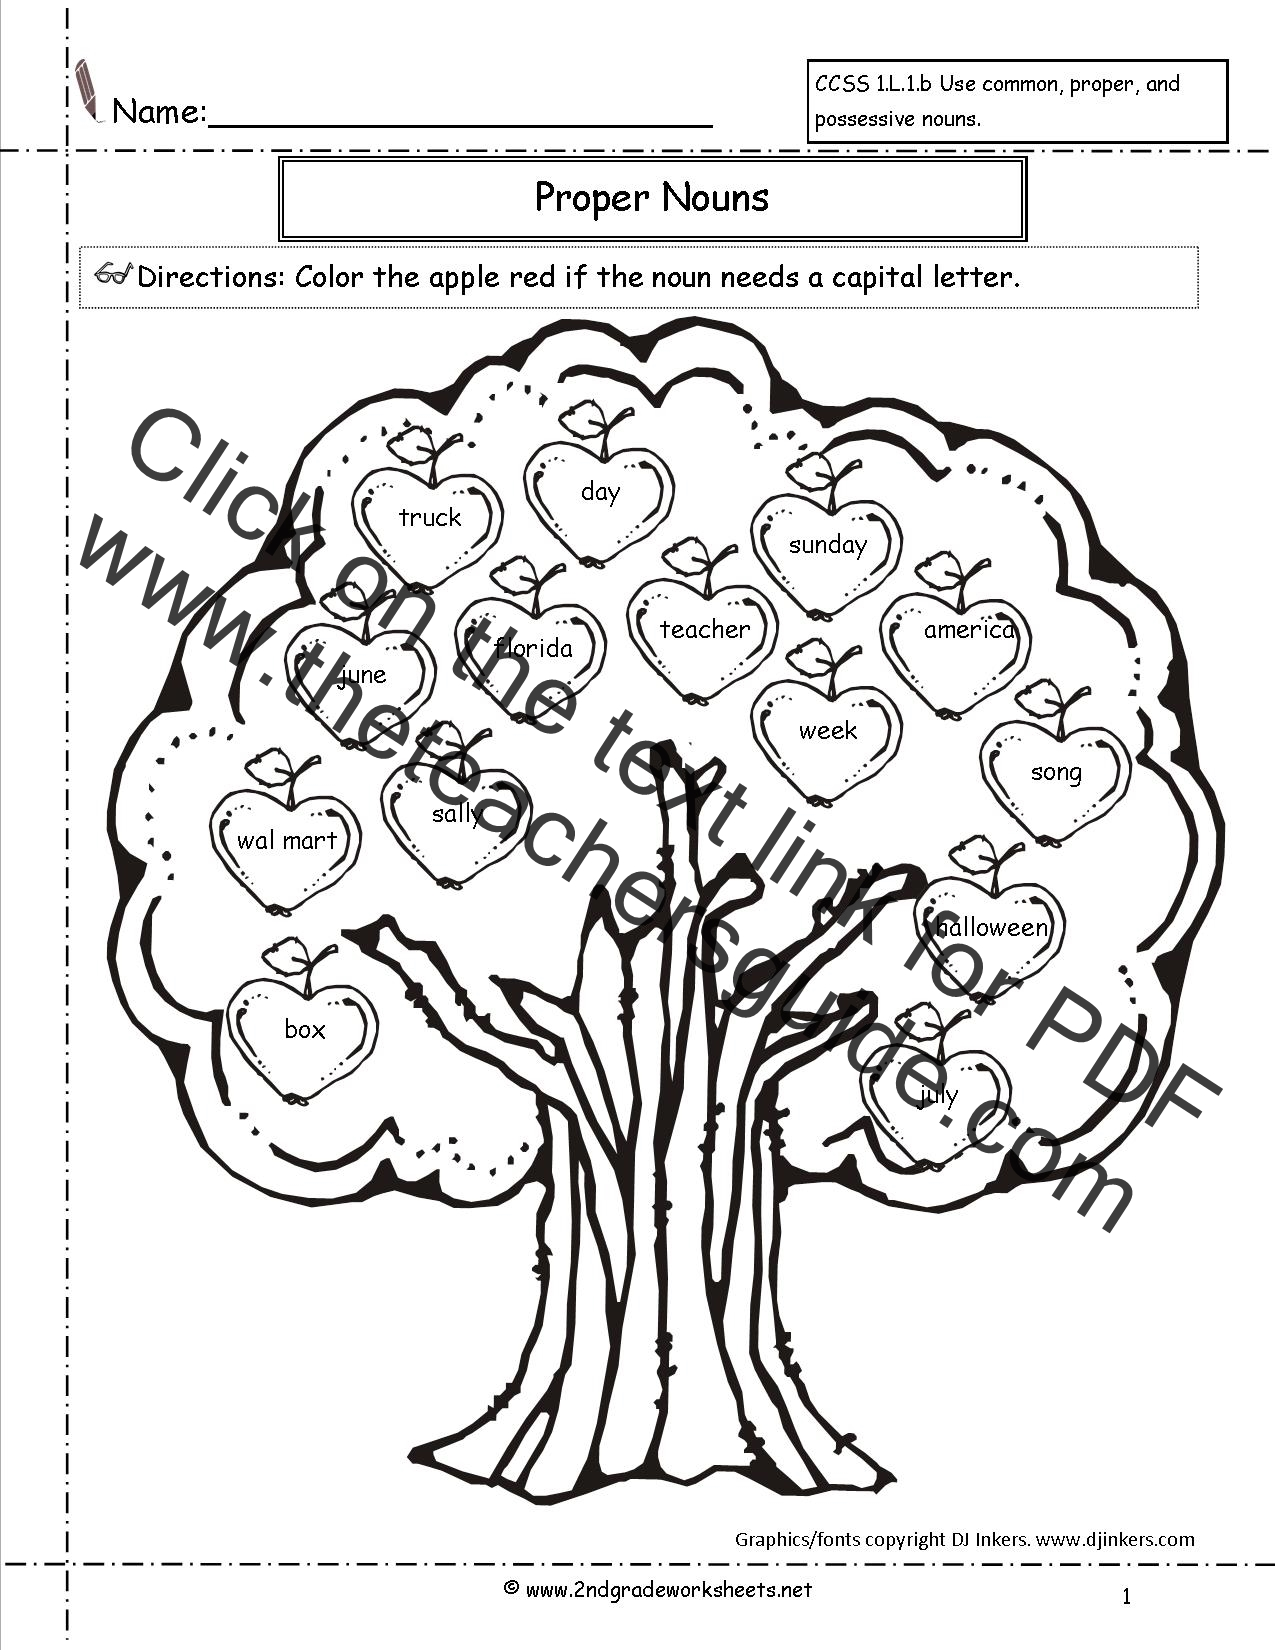 Printables Proper Nouns Worksheet common and proper nouns worksheets from the teachers guide worksheet